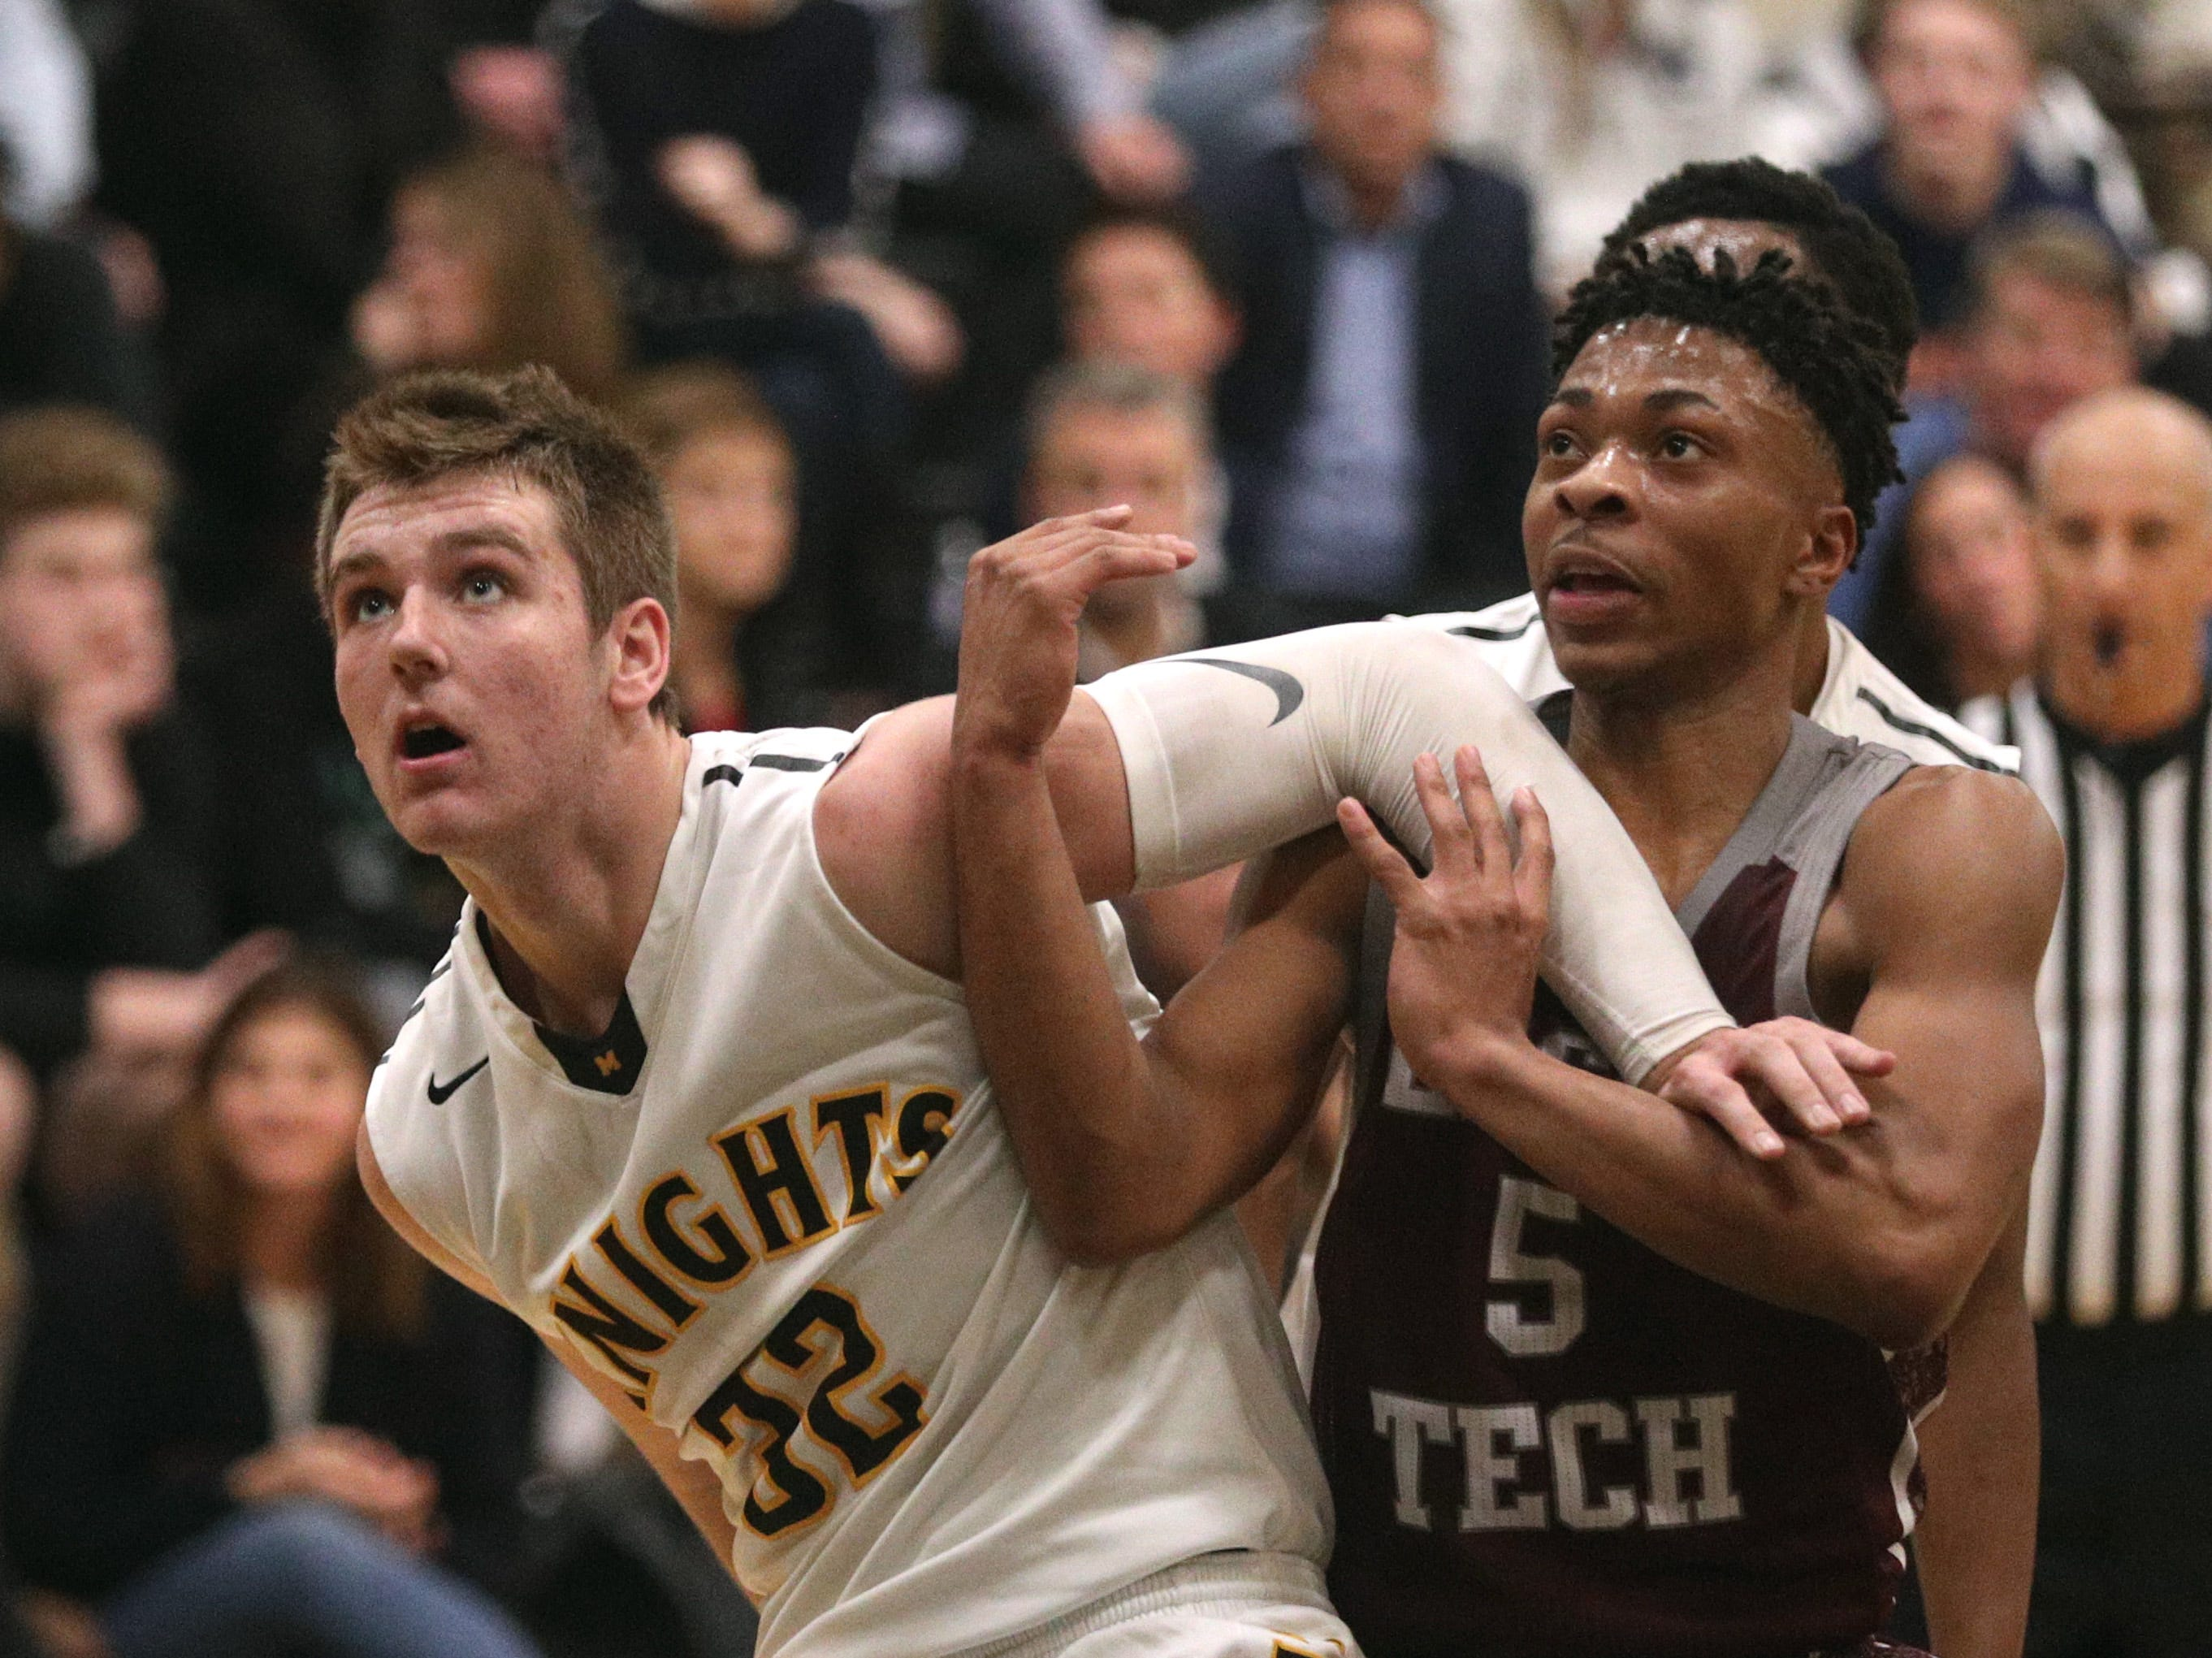 McQuaid's  Connor Zamiara and Edison's Alton Knight fight for position  for a rebound.